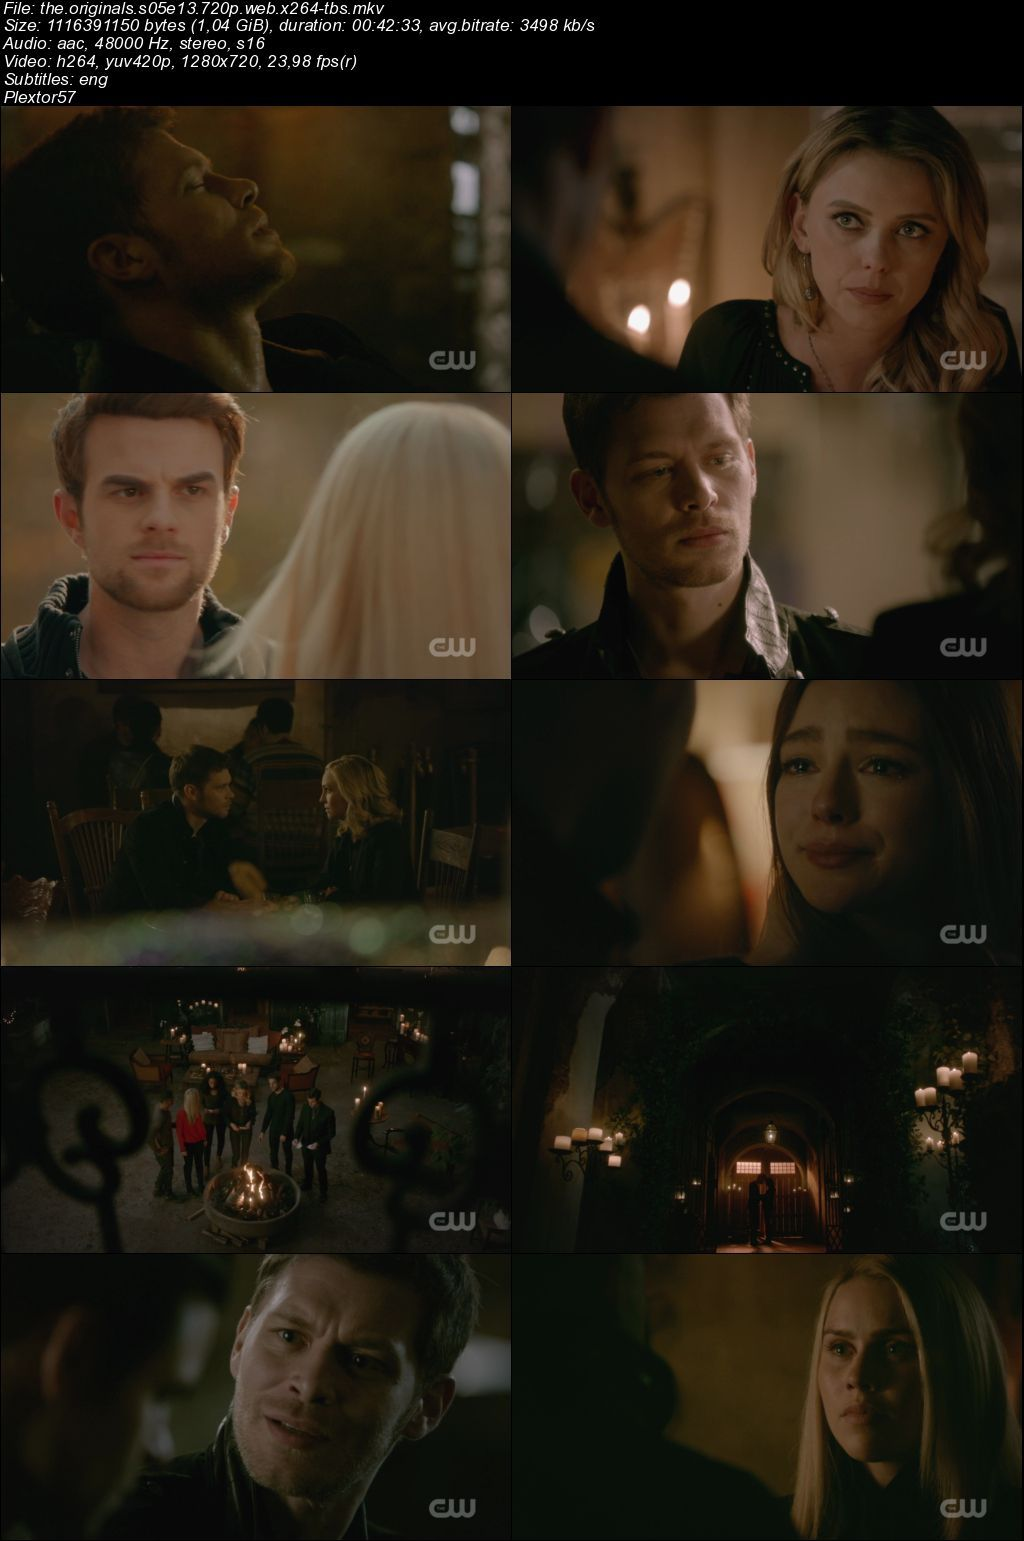 The Originals sezon 5 tum bolumler